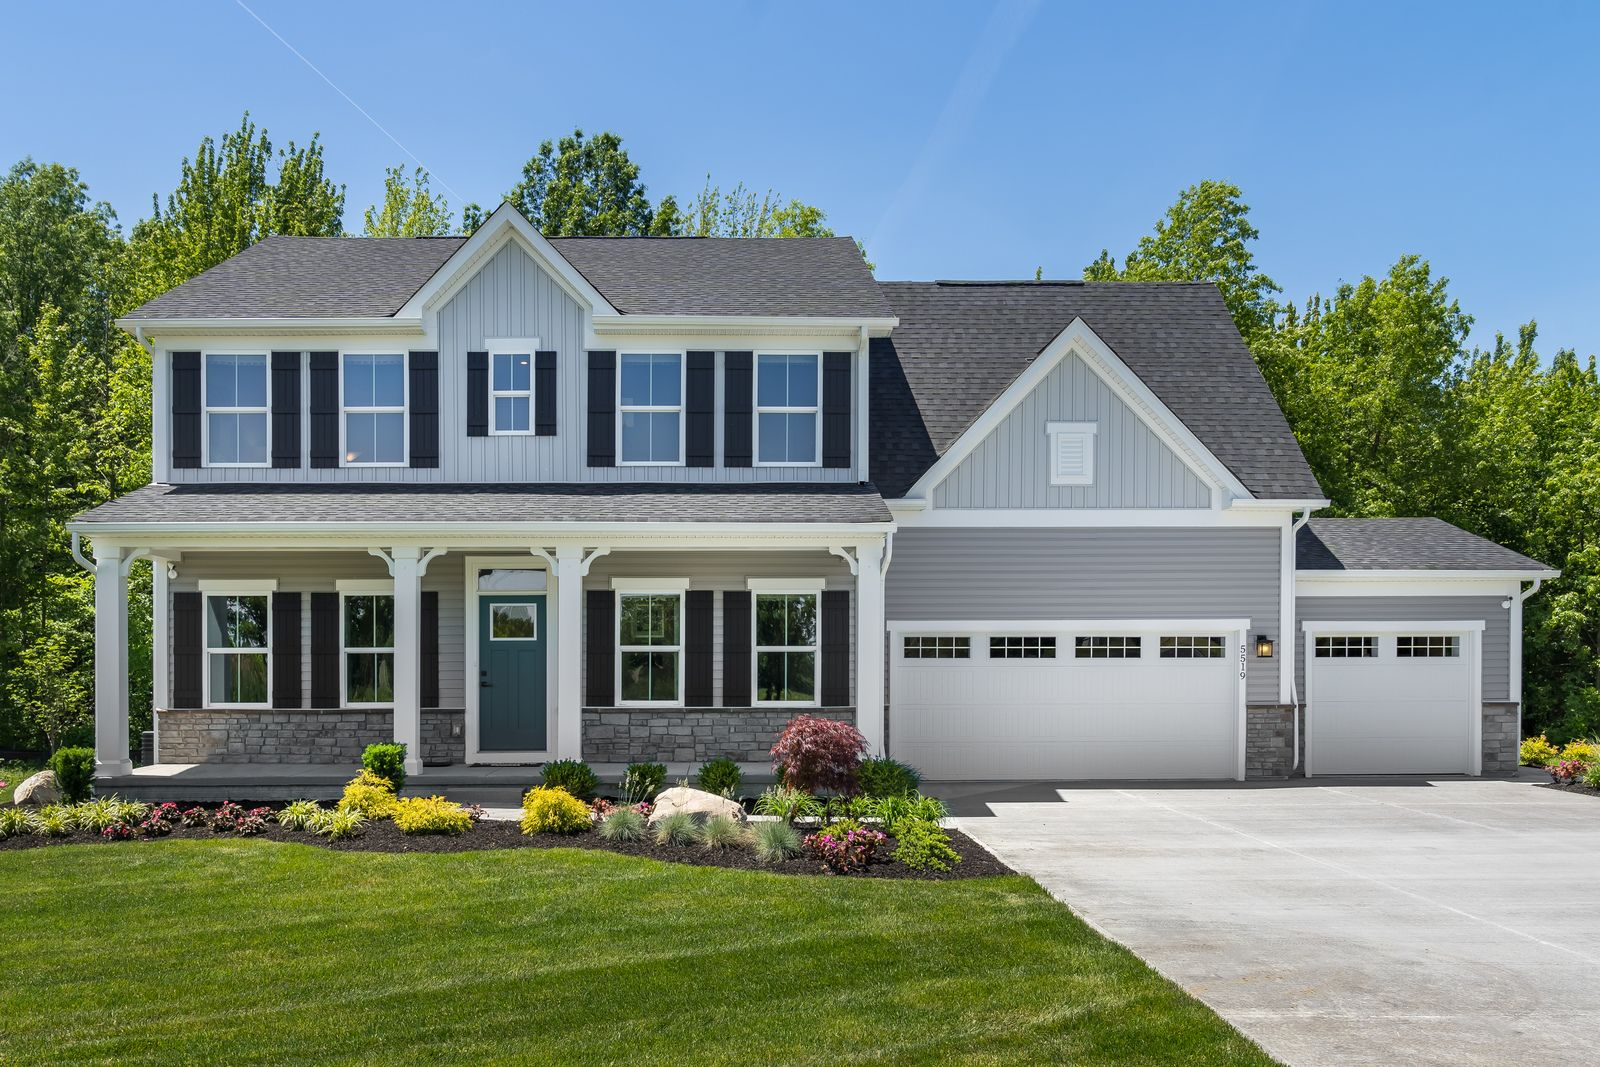 WELCOME HOME TO FOUNTAINS AT EDGEWOOD:Resort-style living with future community pool, clubhouse & walking trails. Optional covered porches,2-3 car garages,with no city taxes –mid300's.Click here to schedule your visit!